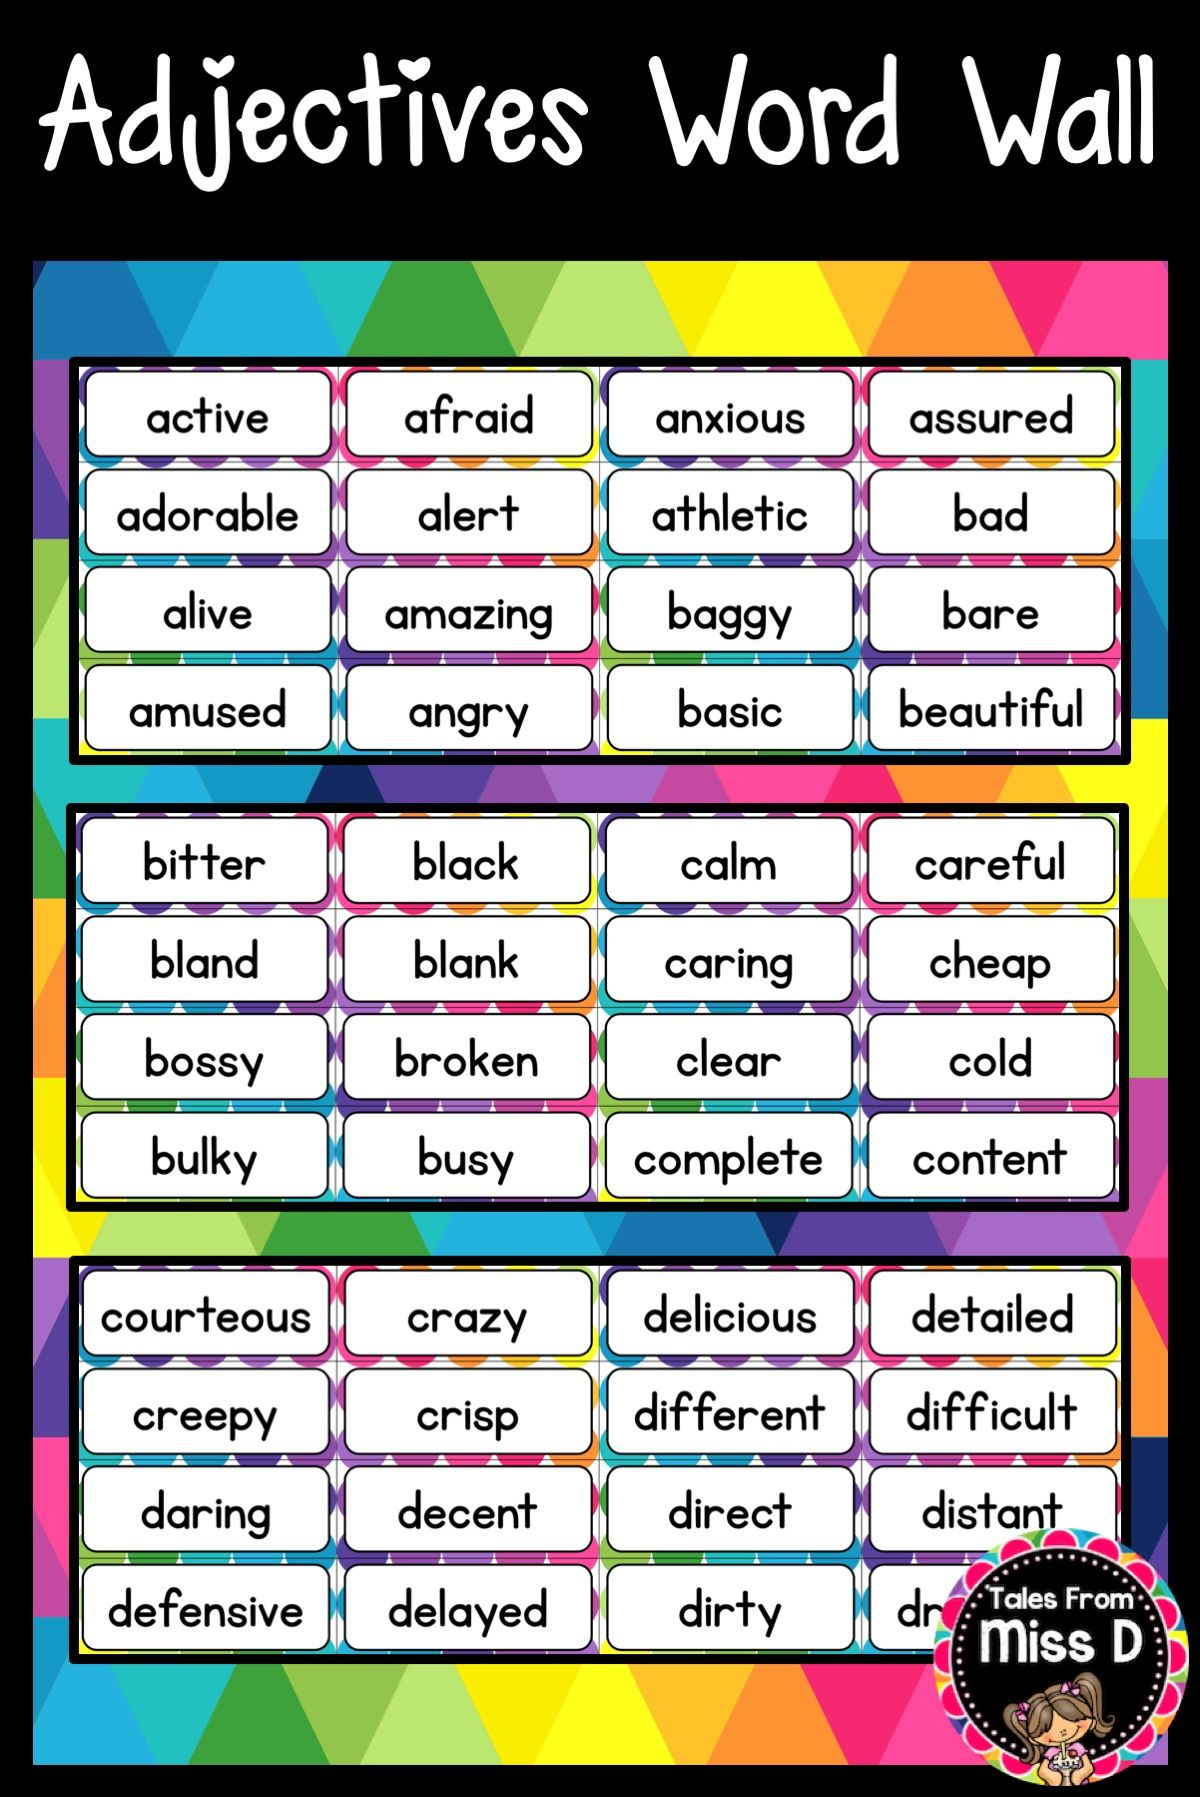 Adjectives Word Wall Adjective Words Learn English English